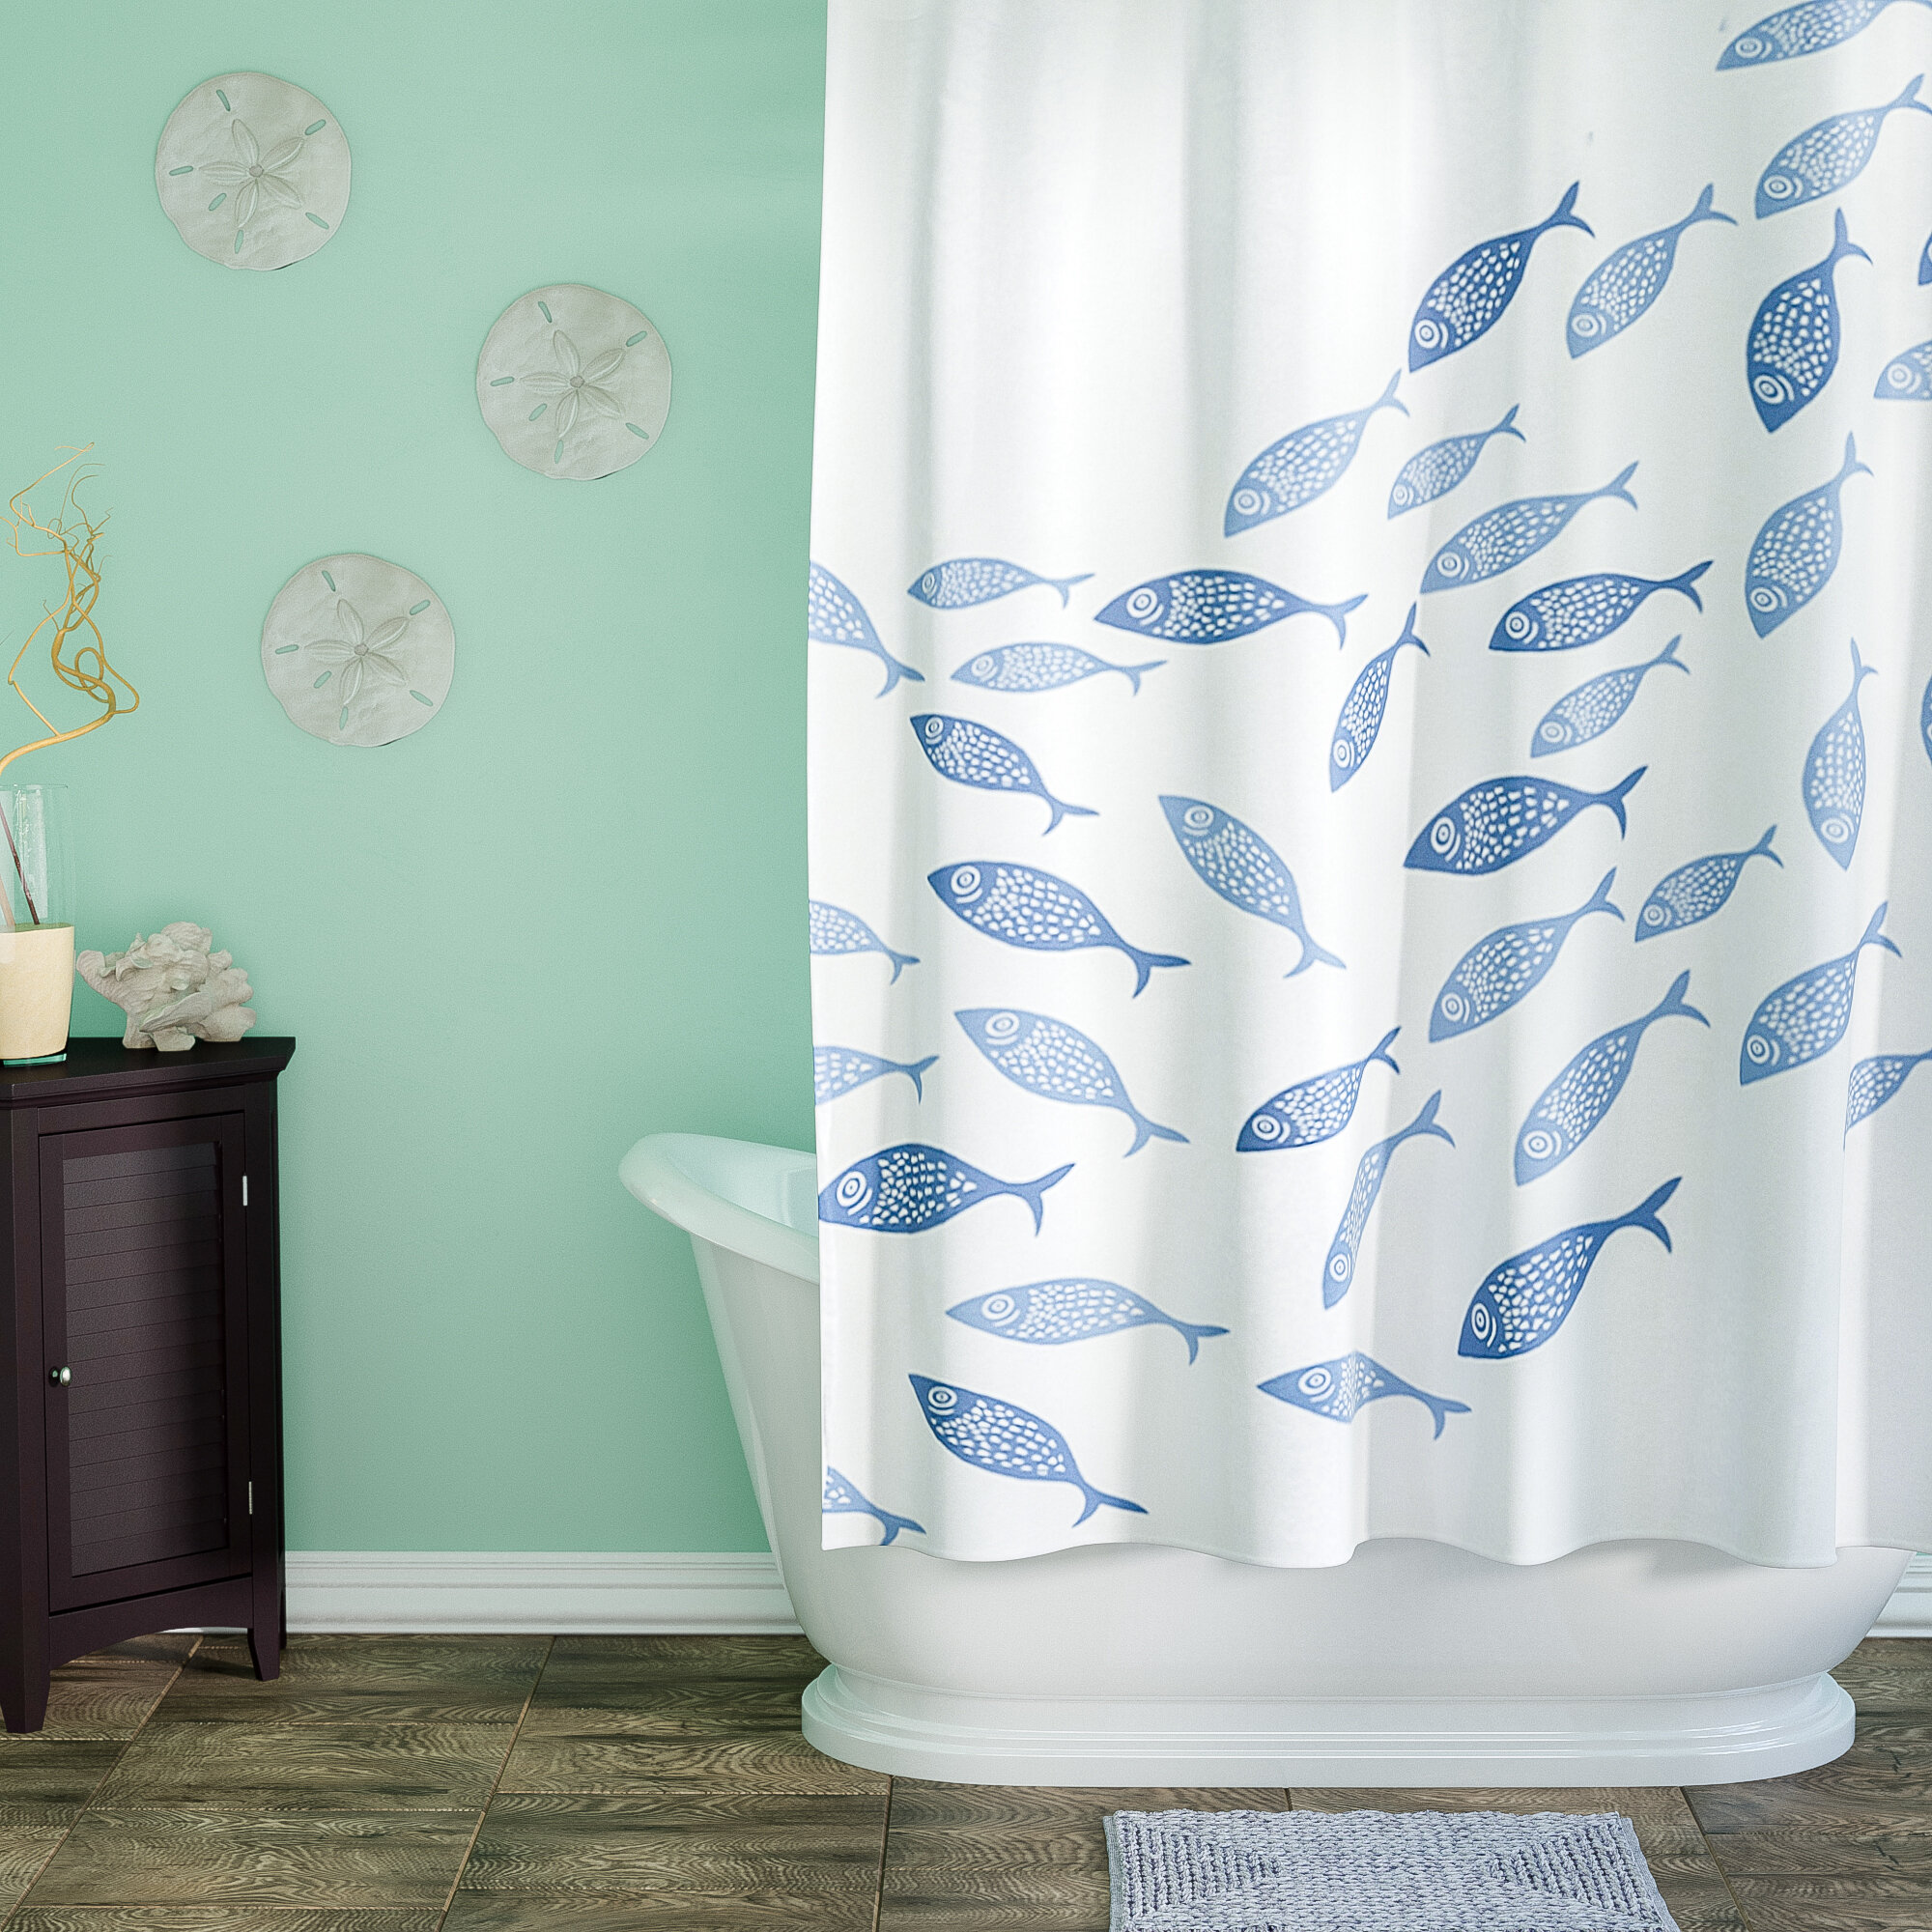 Shower Curtain Extra Long//Wide Undersea Creature Waterproof with 12 Hooks Rings